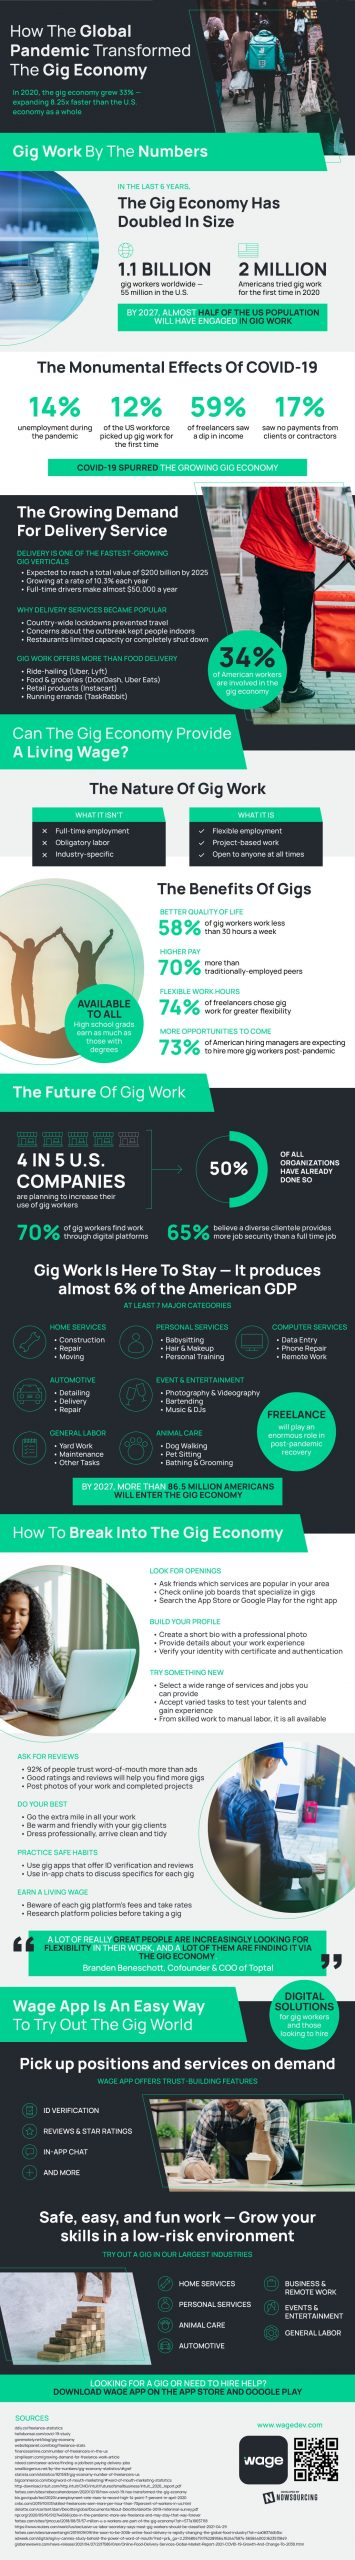 How the Pandemic Changed the Gig Economy [Infographic]